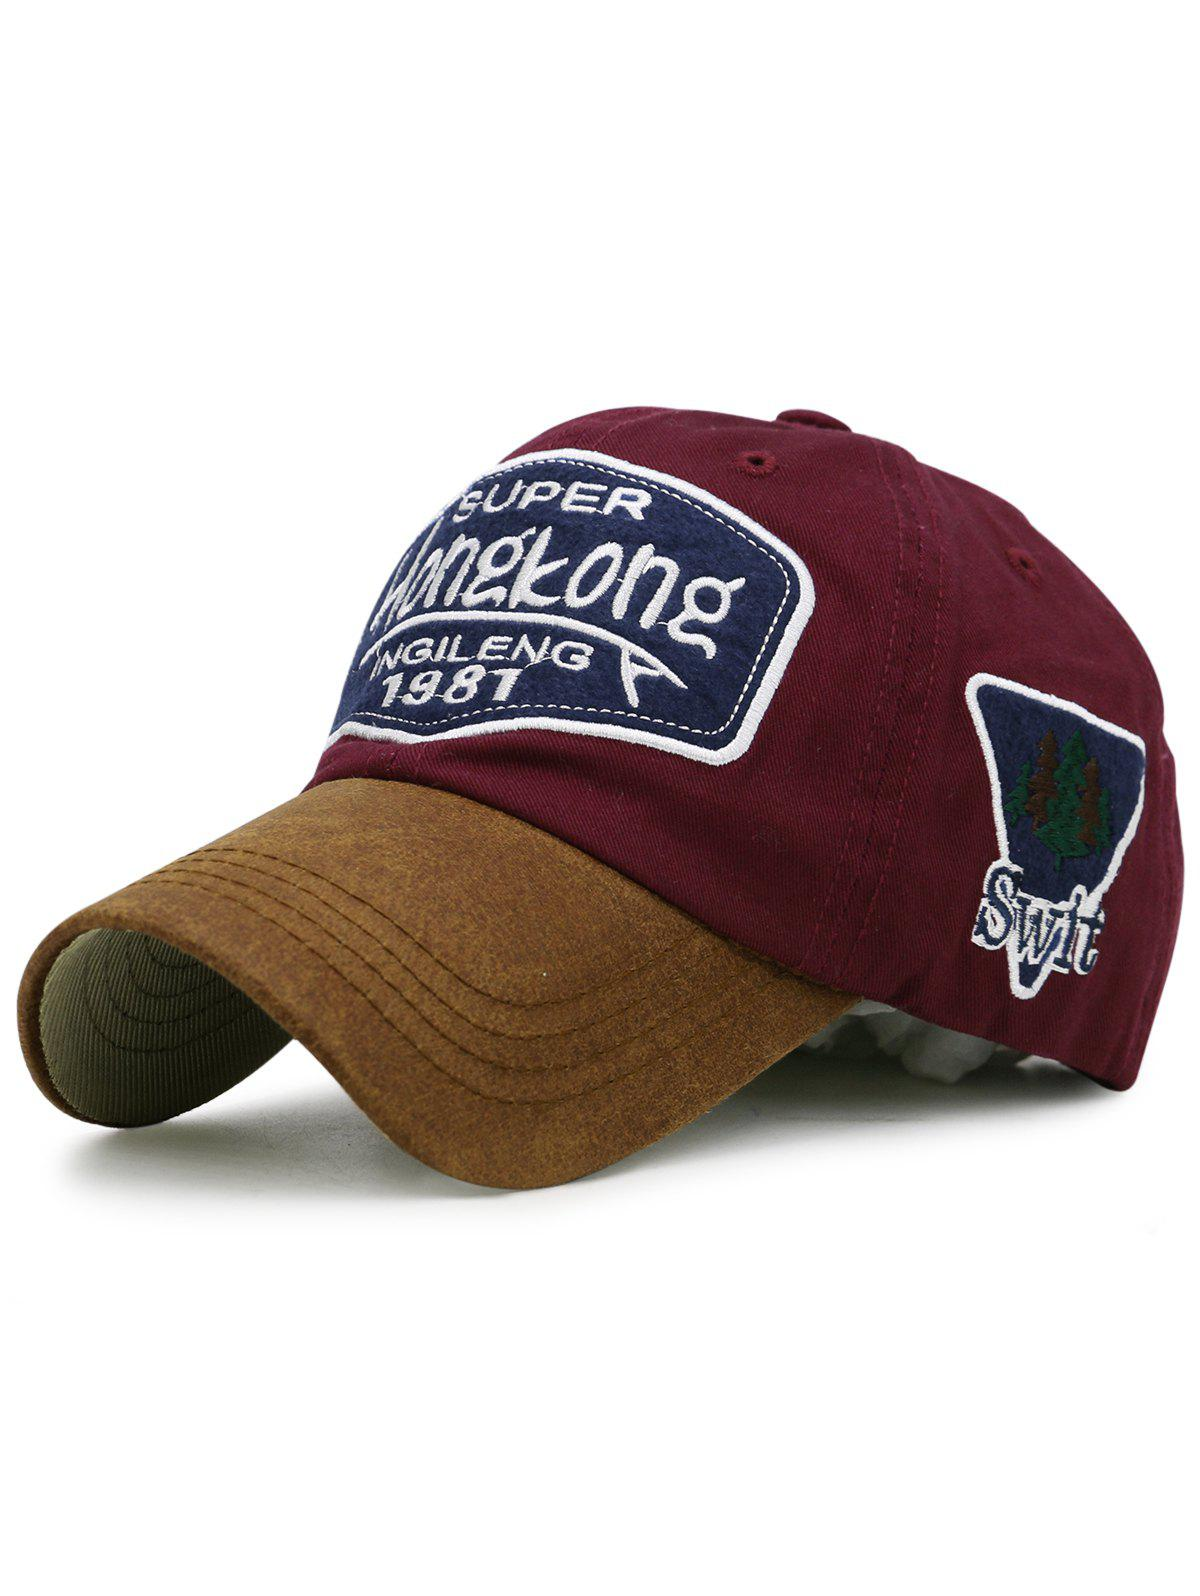 Unique Letter Embroidery Adjustable Graphic Hat - WINE RED